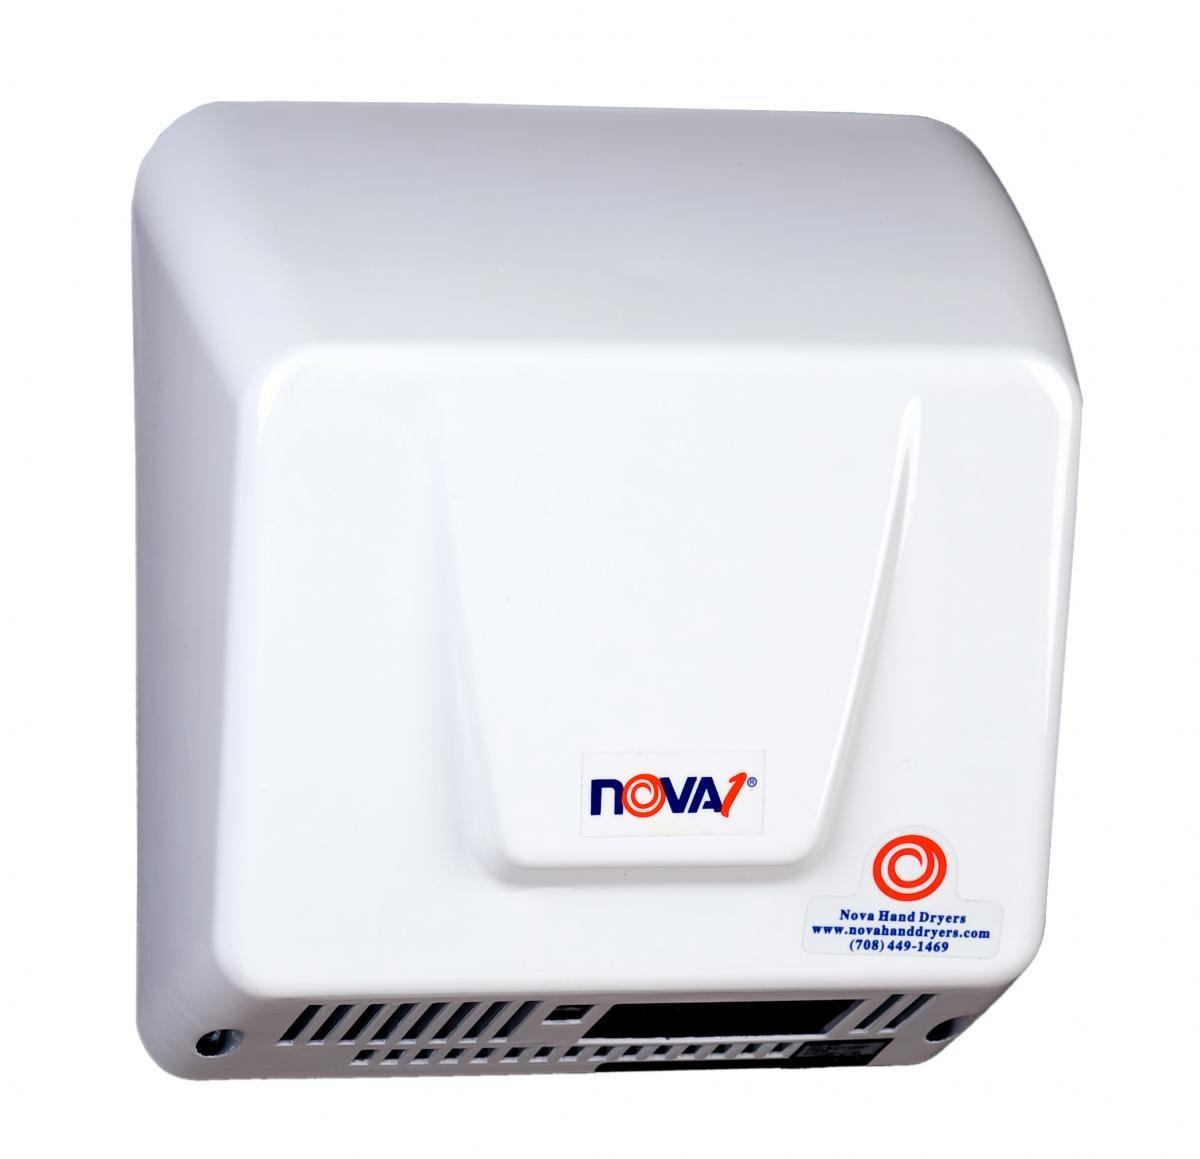 0830 Nova 1 Automatic Hand Dryer - infared sensor activated, 100 VAC to 240 VAC - 50 or 60 Hz